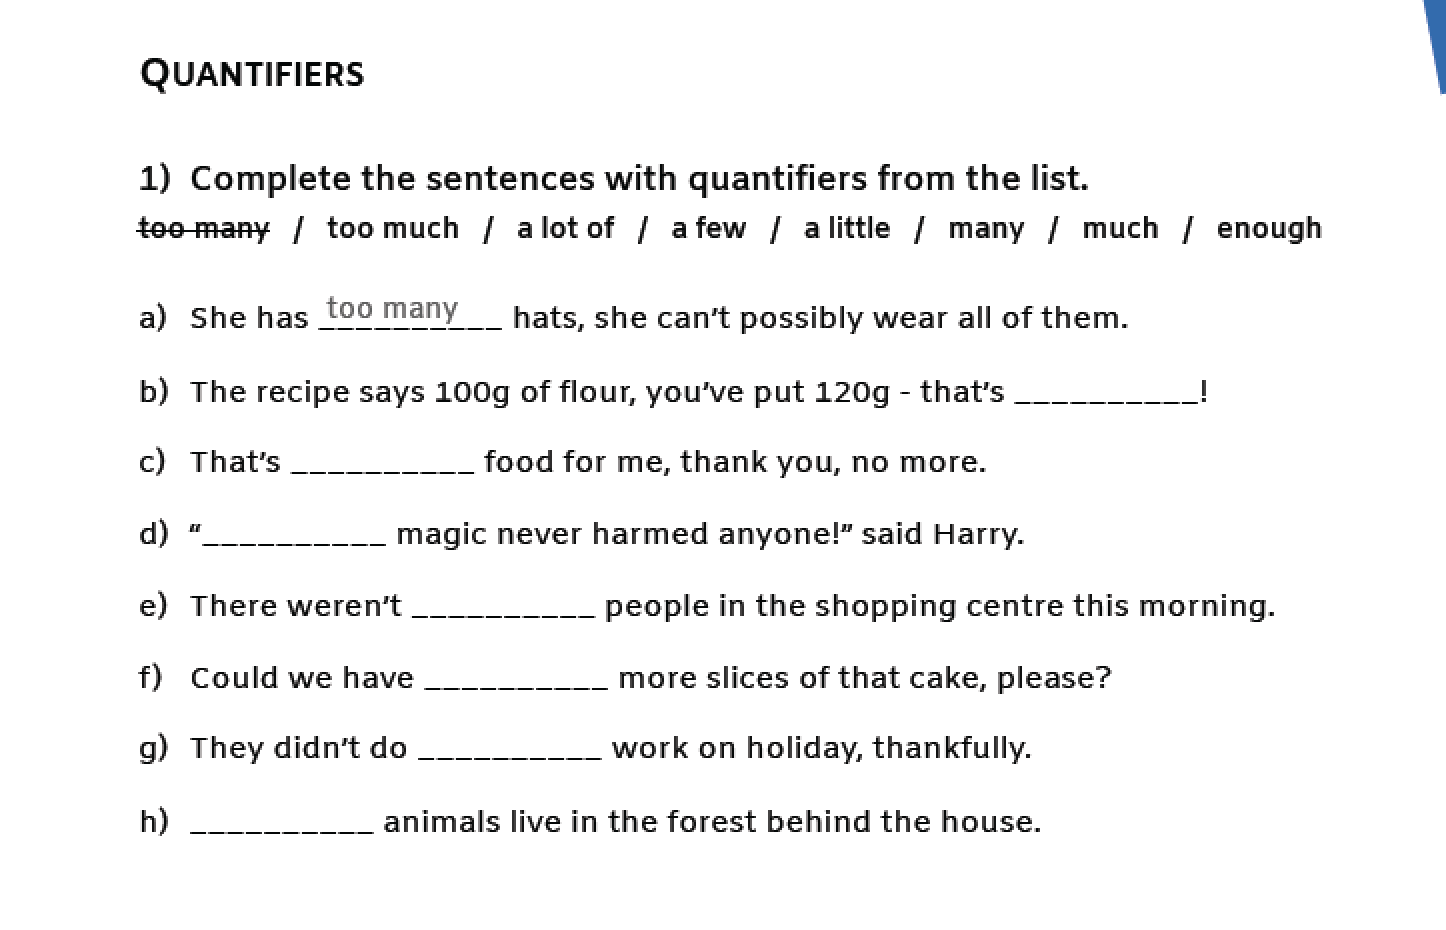 Common Quantifiers, �Too�, And �Enough� With Nouns, Verbs And Adjectives